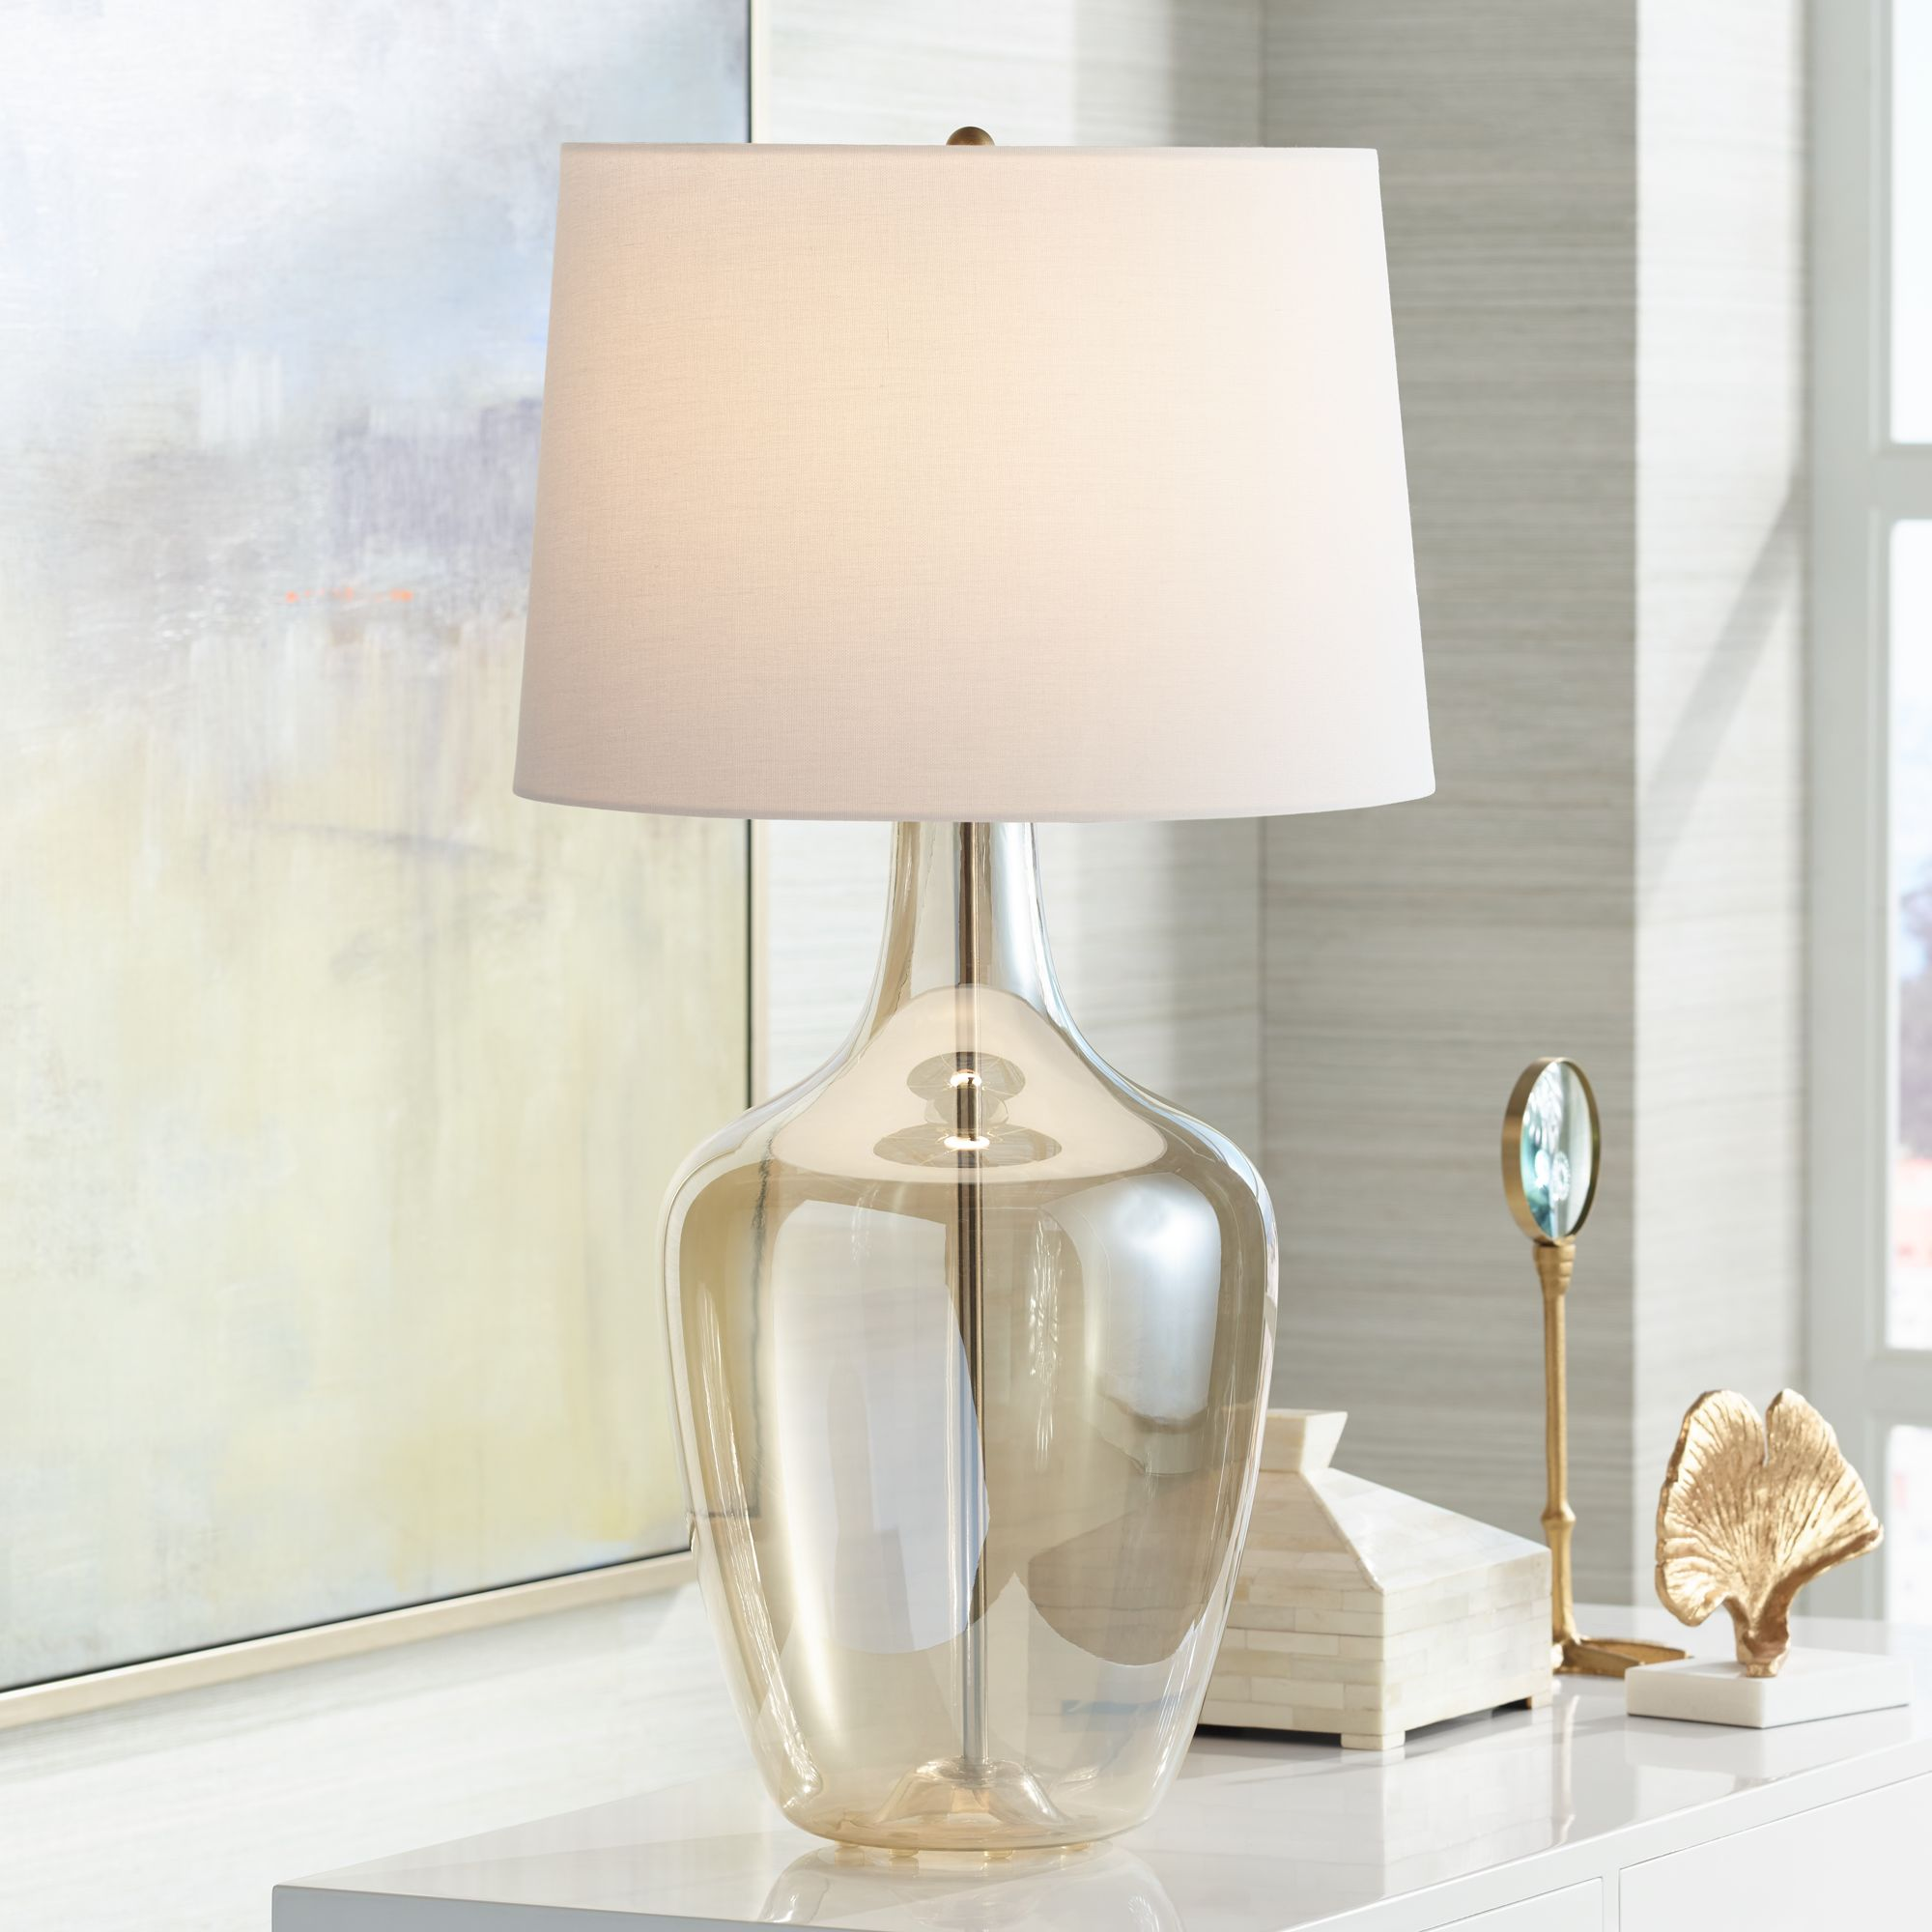 Possini Euro Design Modern Table Lamp Clear Champagne Glass Jar Off White Drum Shade for Living Room Family Bedroom Bedside Office